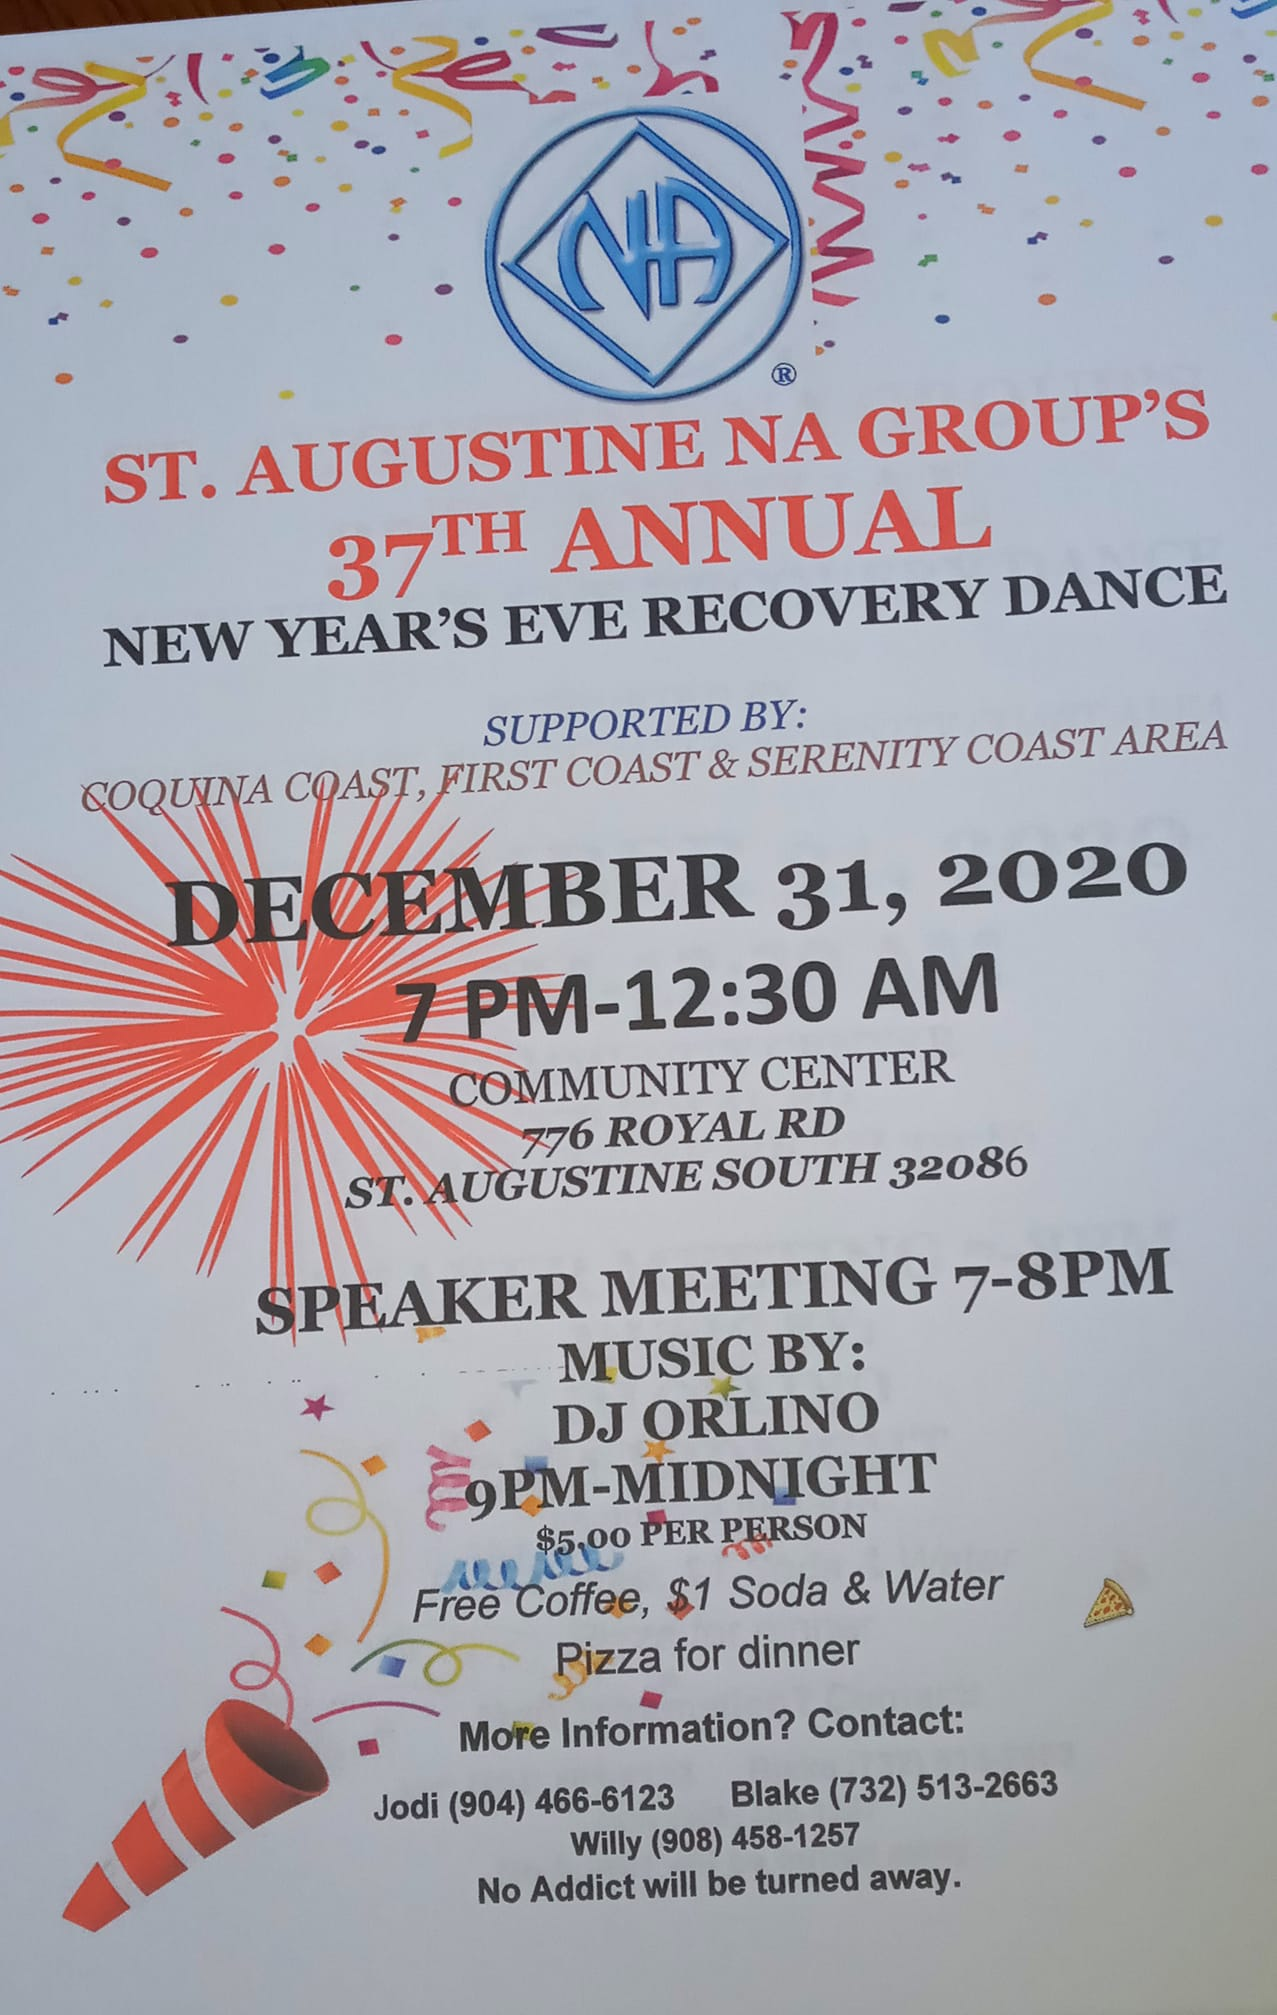 St Augustine NA Group's 37th Annual New Year's Eve Recovery Dance @ Community Center | St. Augustine | Florida | United States